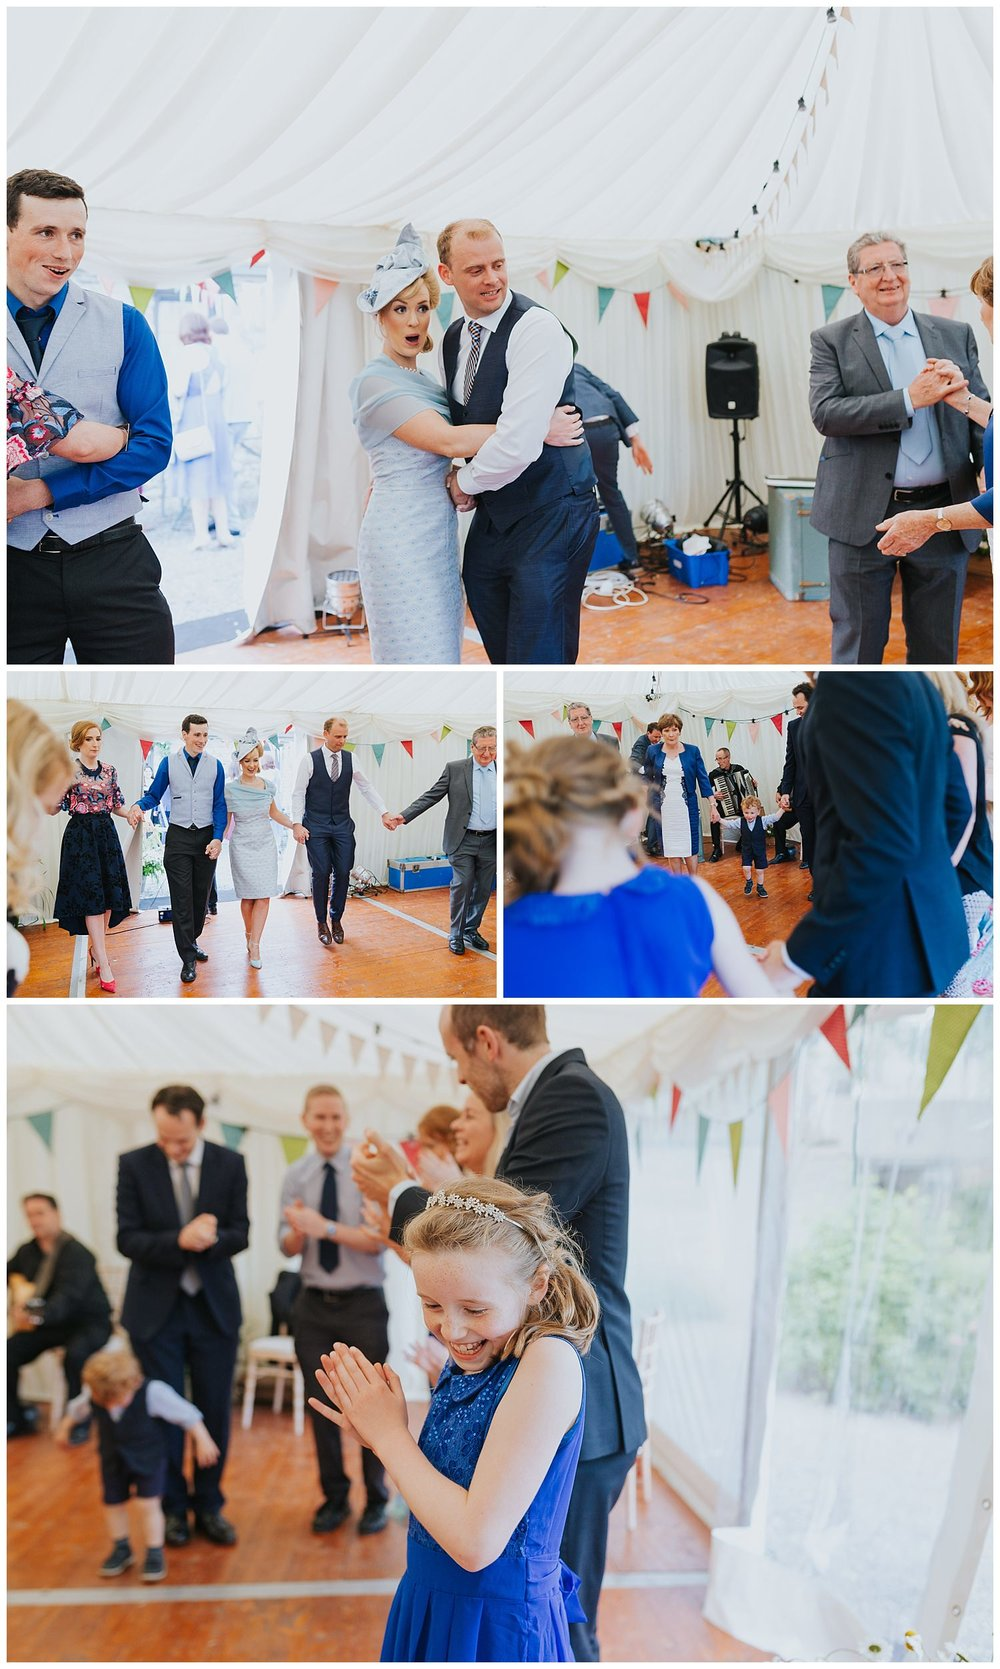 e+t_ballilogue_kilkenny_wedding_photographer_liviafigueiredo_231.jpg